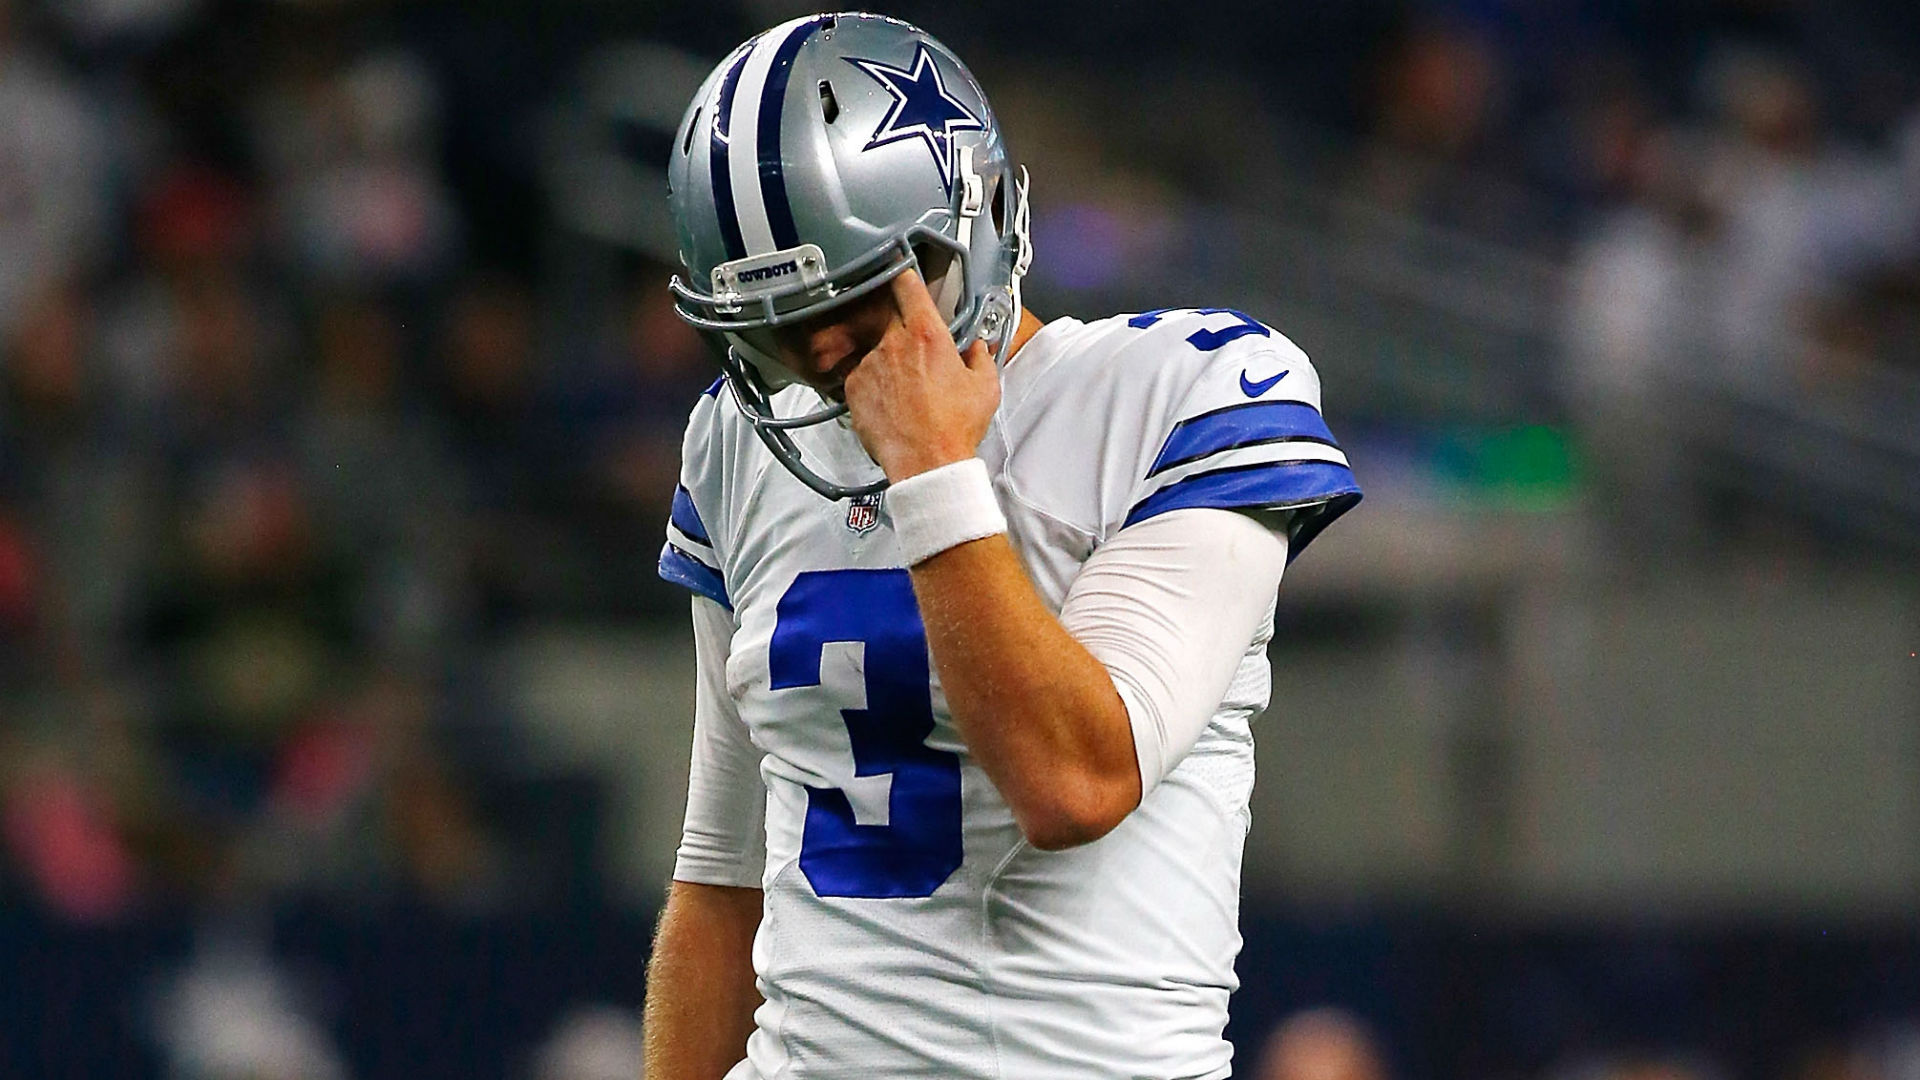 brandon-weeden-101215-usnews-getty-ftr